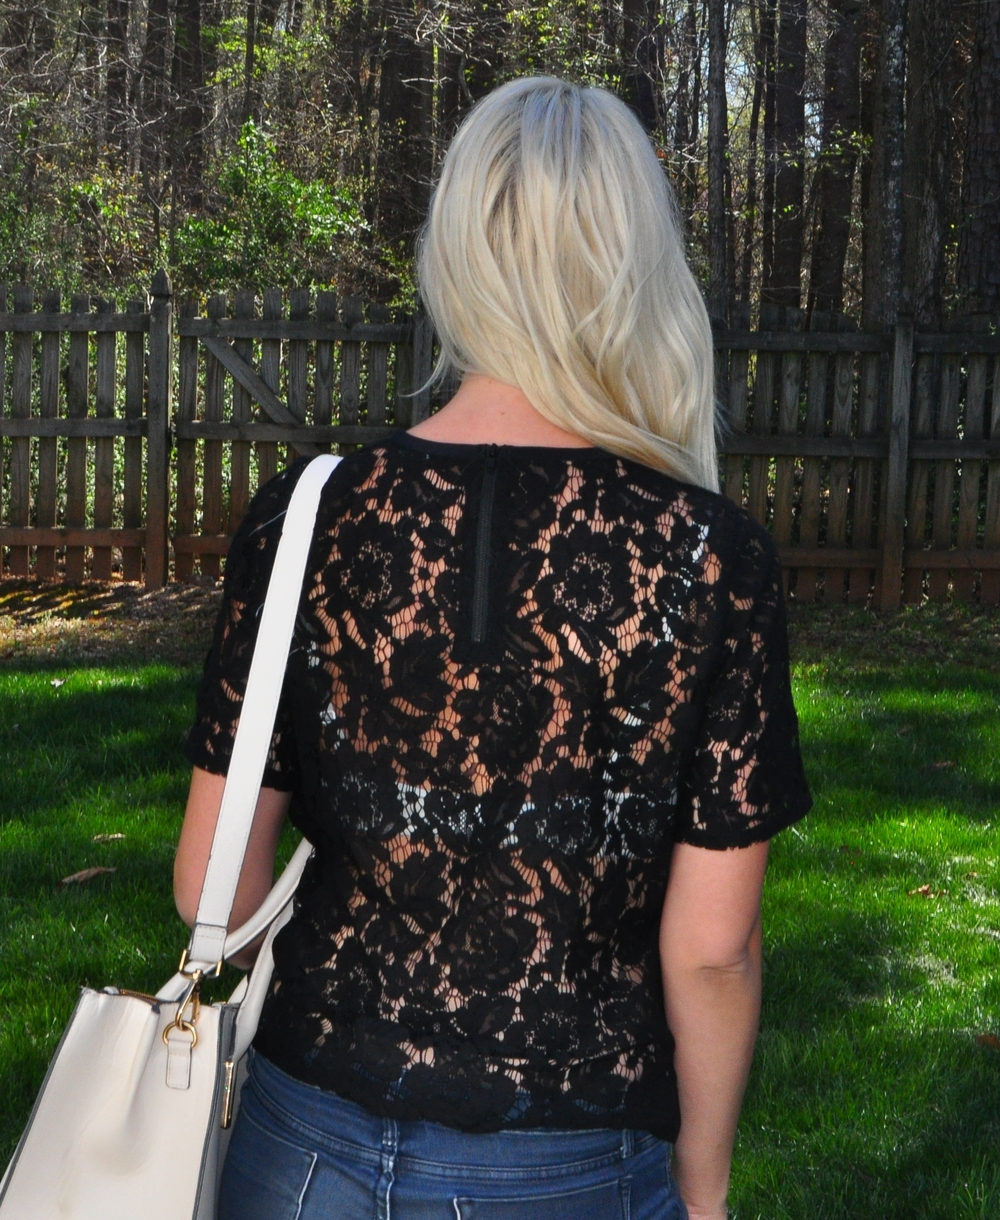 lace screams spring pic 3.jpg